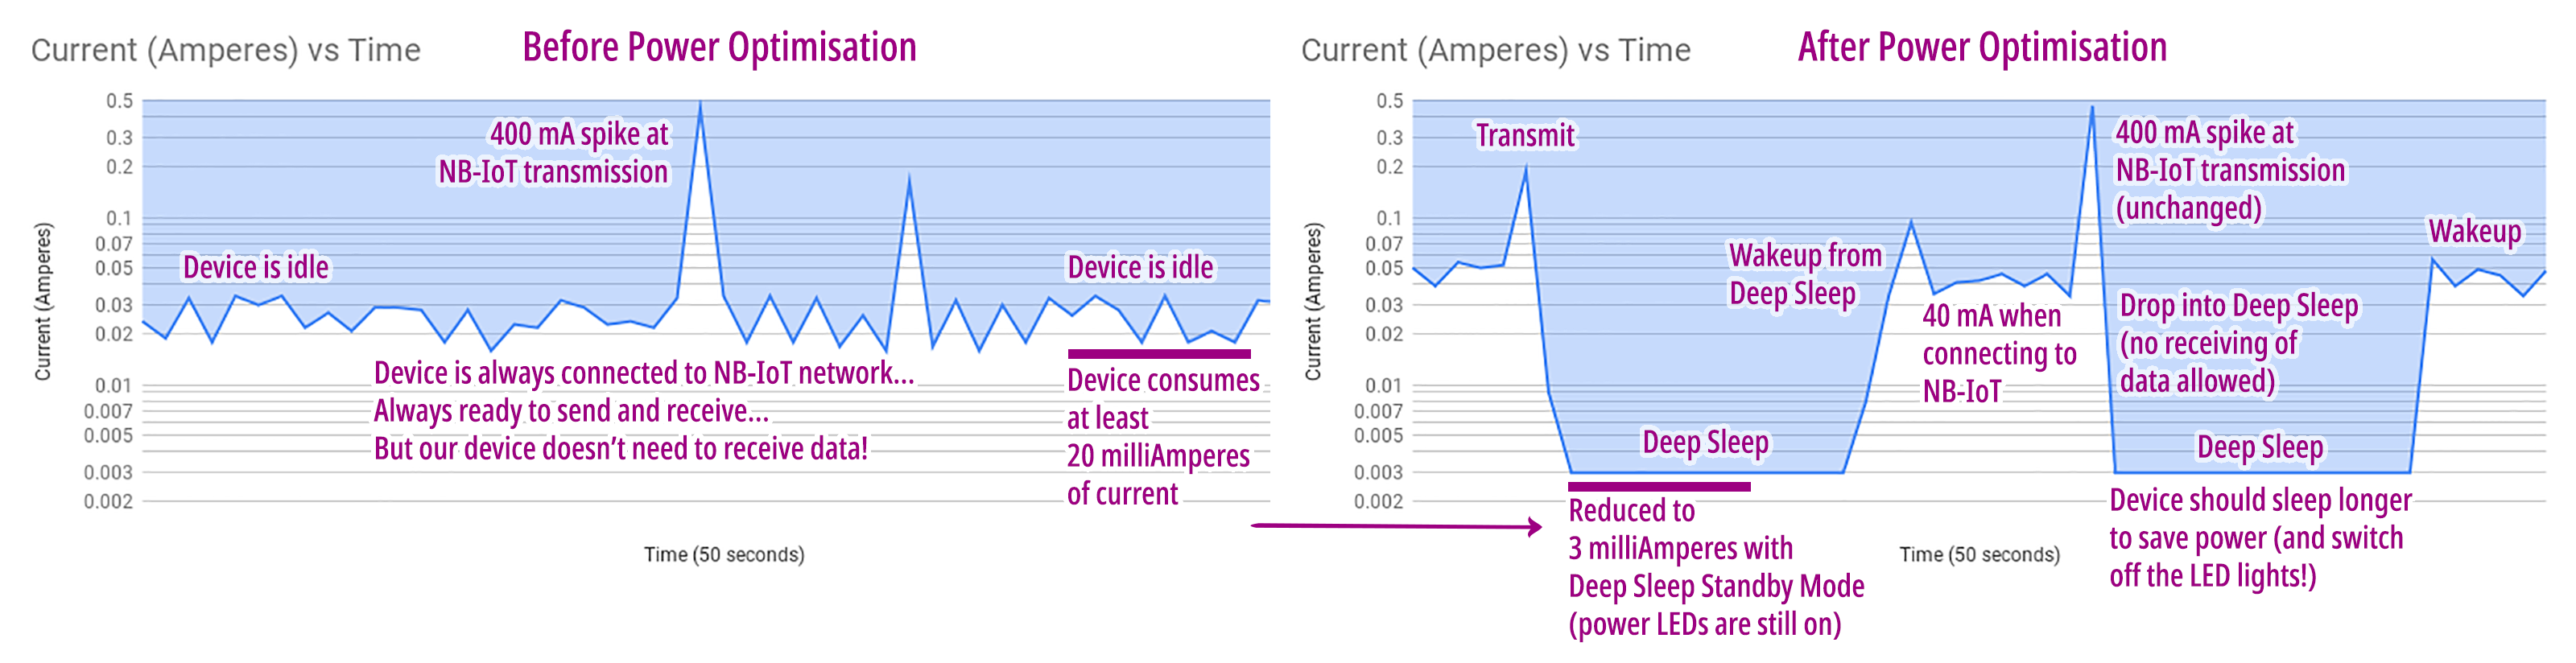 Before: Device consumes at least 20 milliAmperes of current. After: Reduced to 3 milliAmperes with Deep Sleep Standby Mode